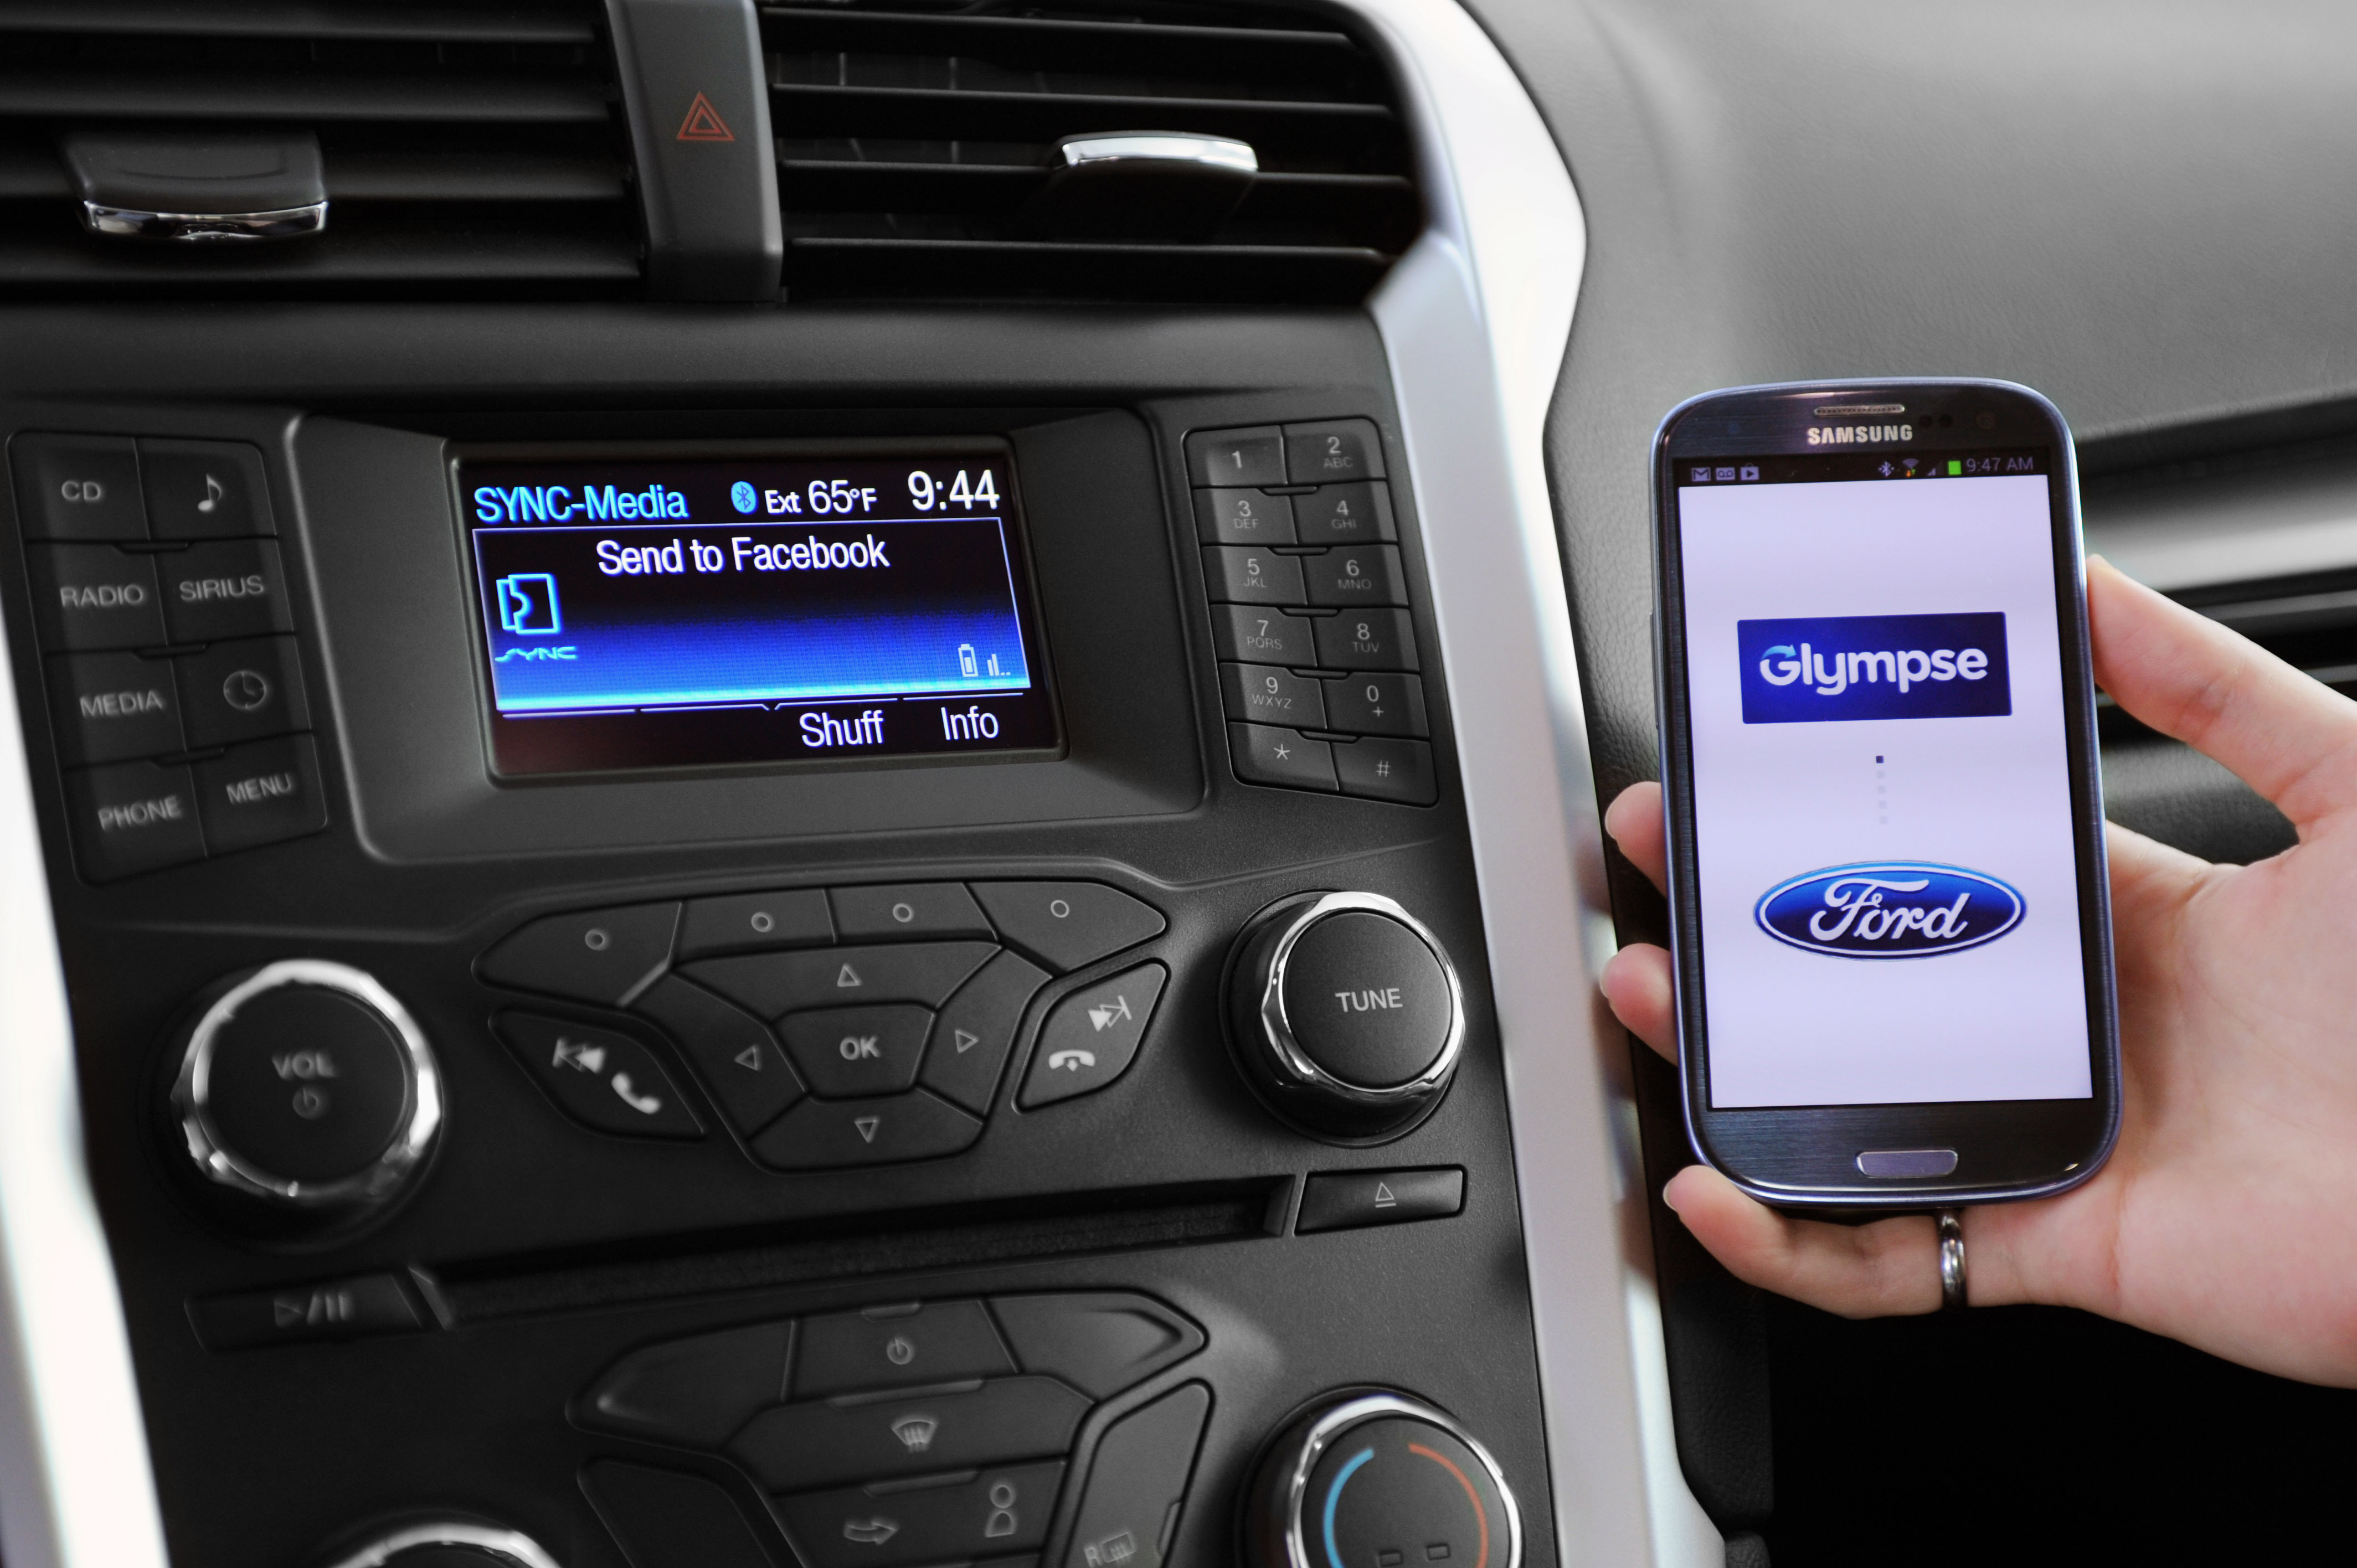 Ford Sync with Glympse